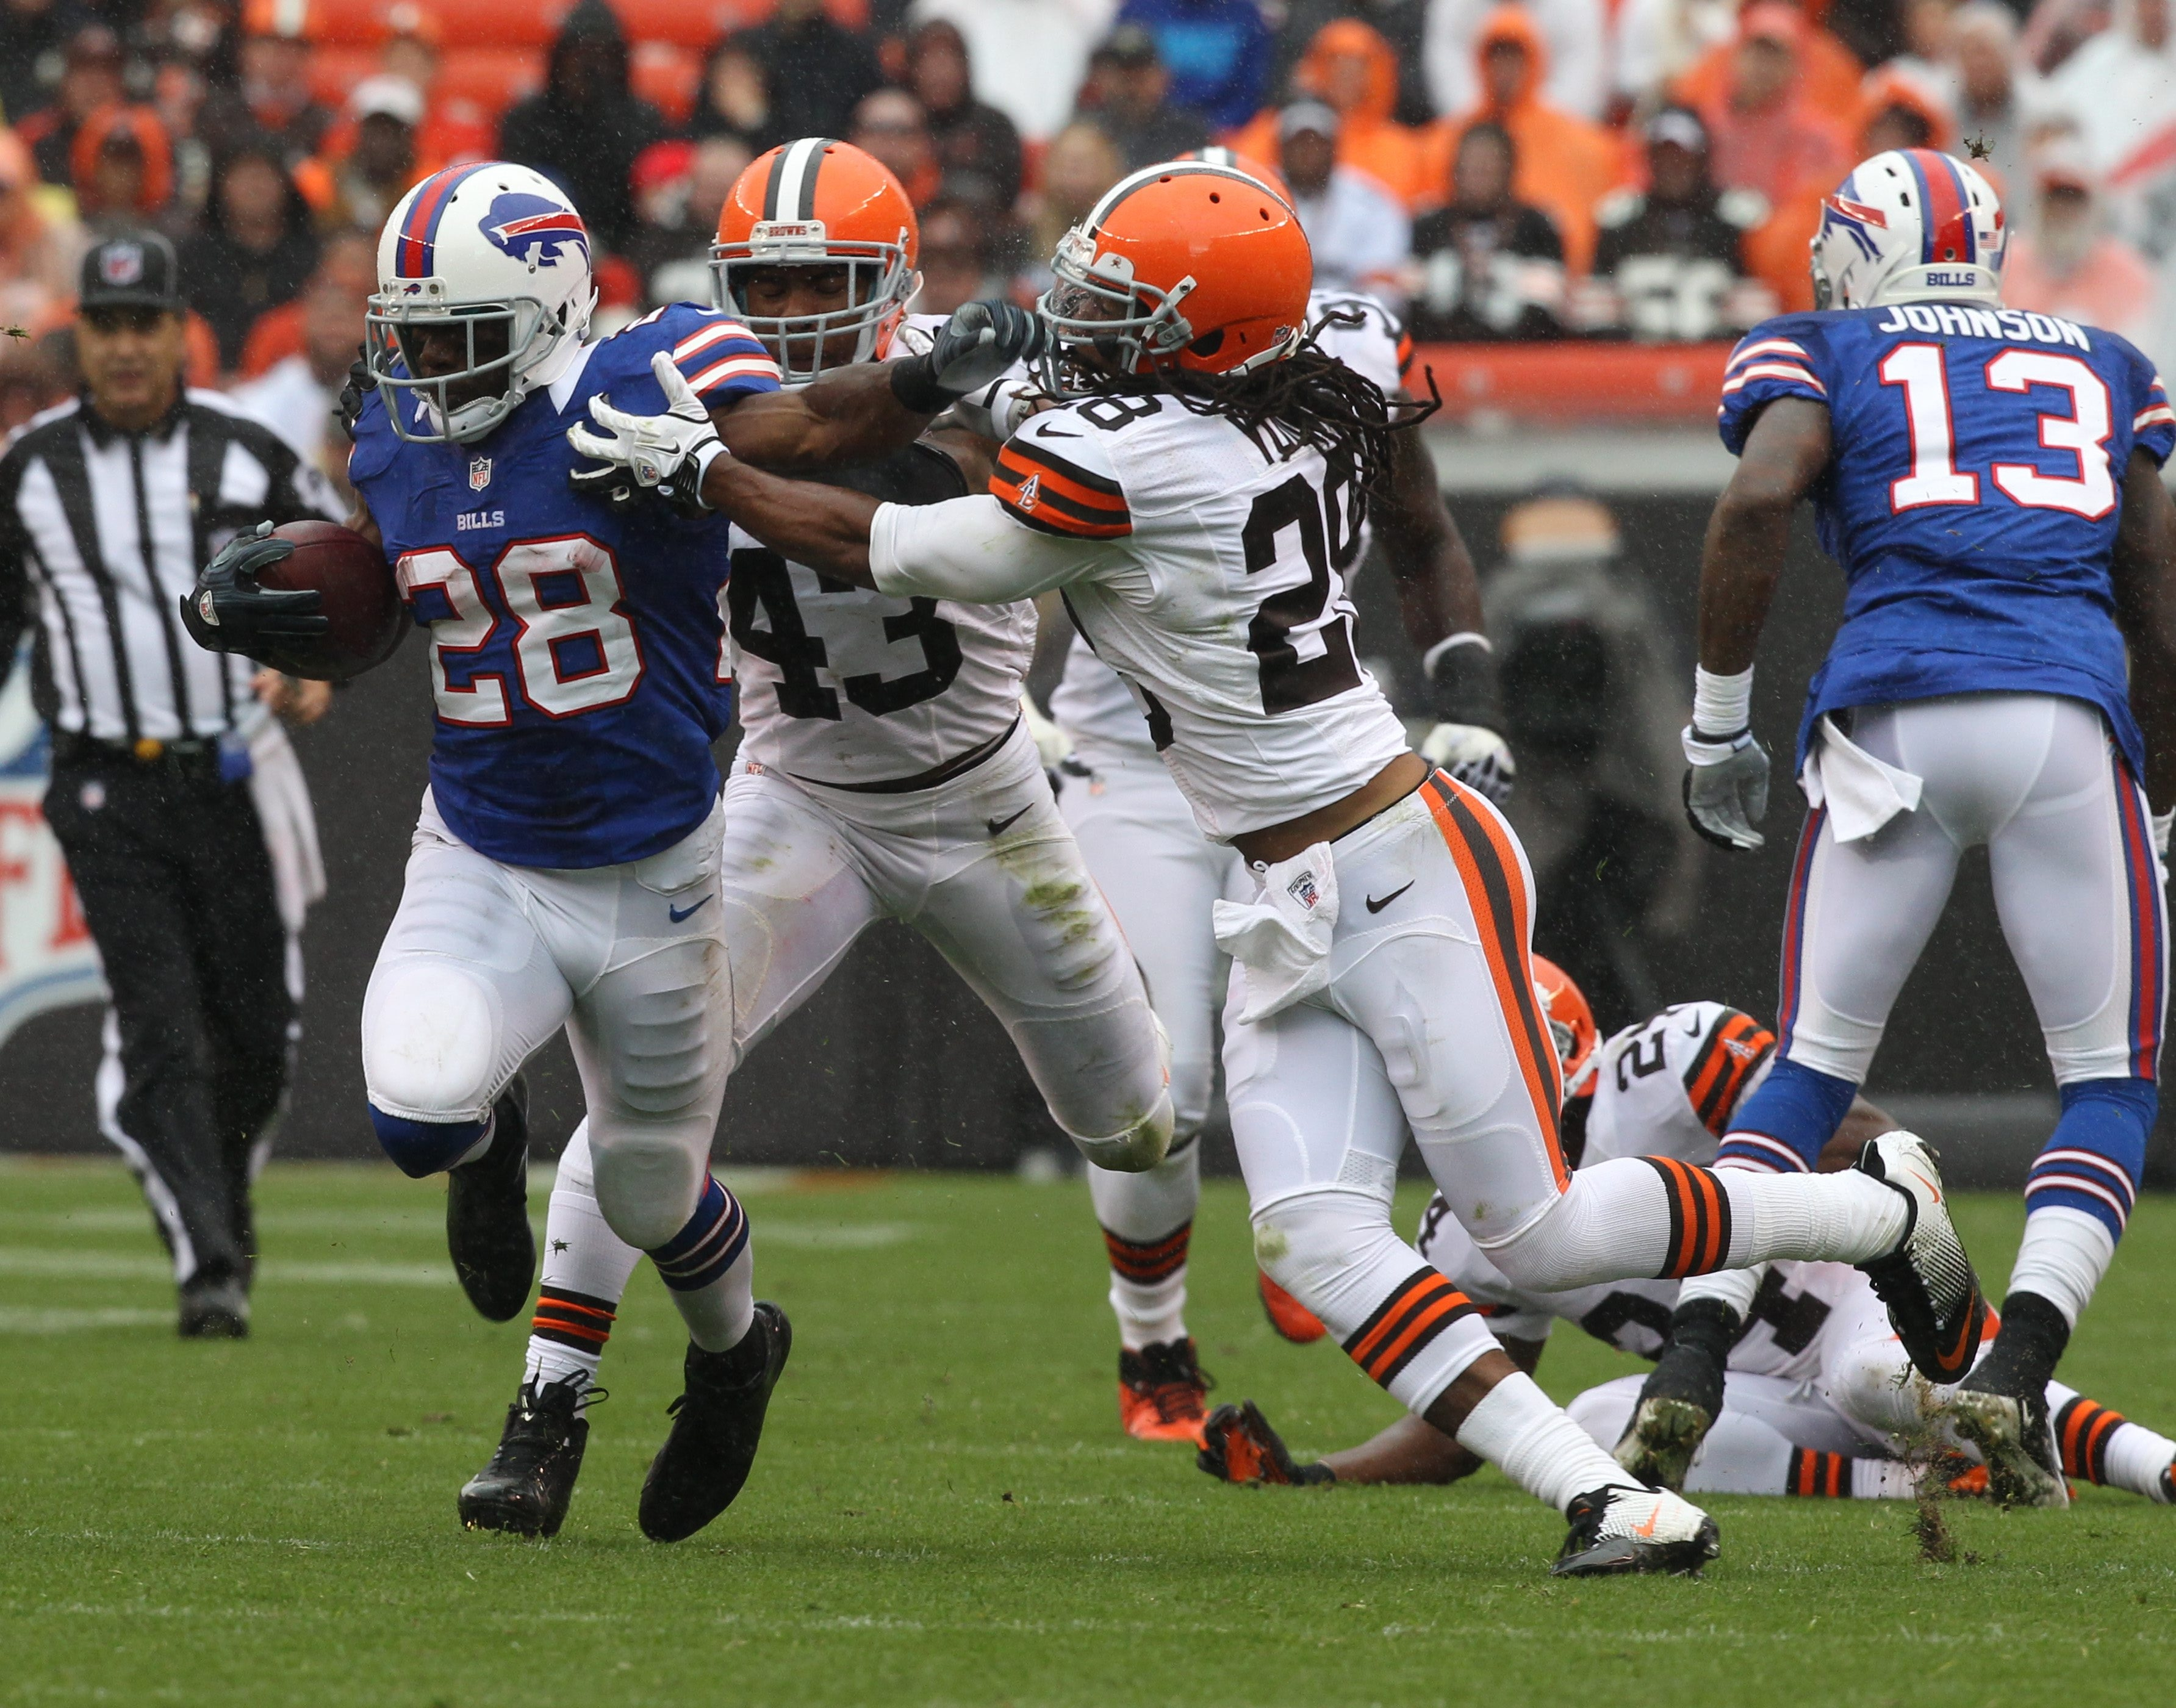 James P. McCoy / Buffalo News    Bills running back C.J. Spiller gets tackled by Cleveland Browns strong safety Usama Young in the first quarter. Spiller hurt a shoulder on the play and did not return.